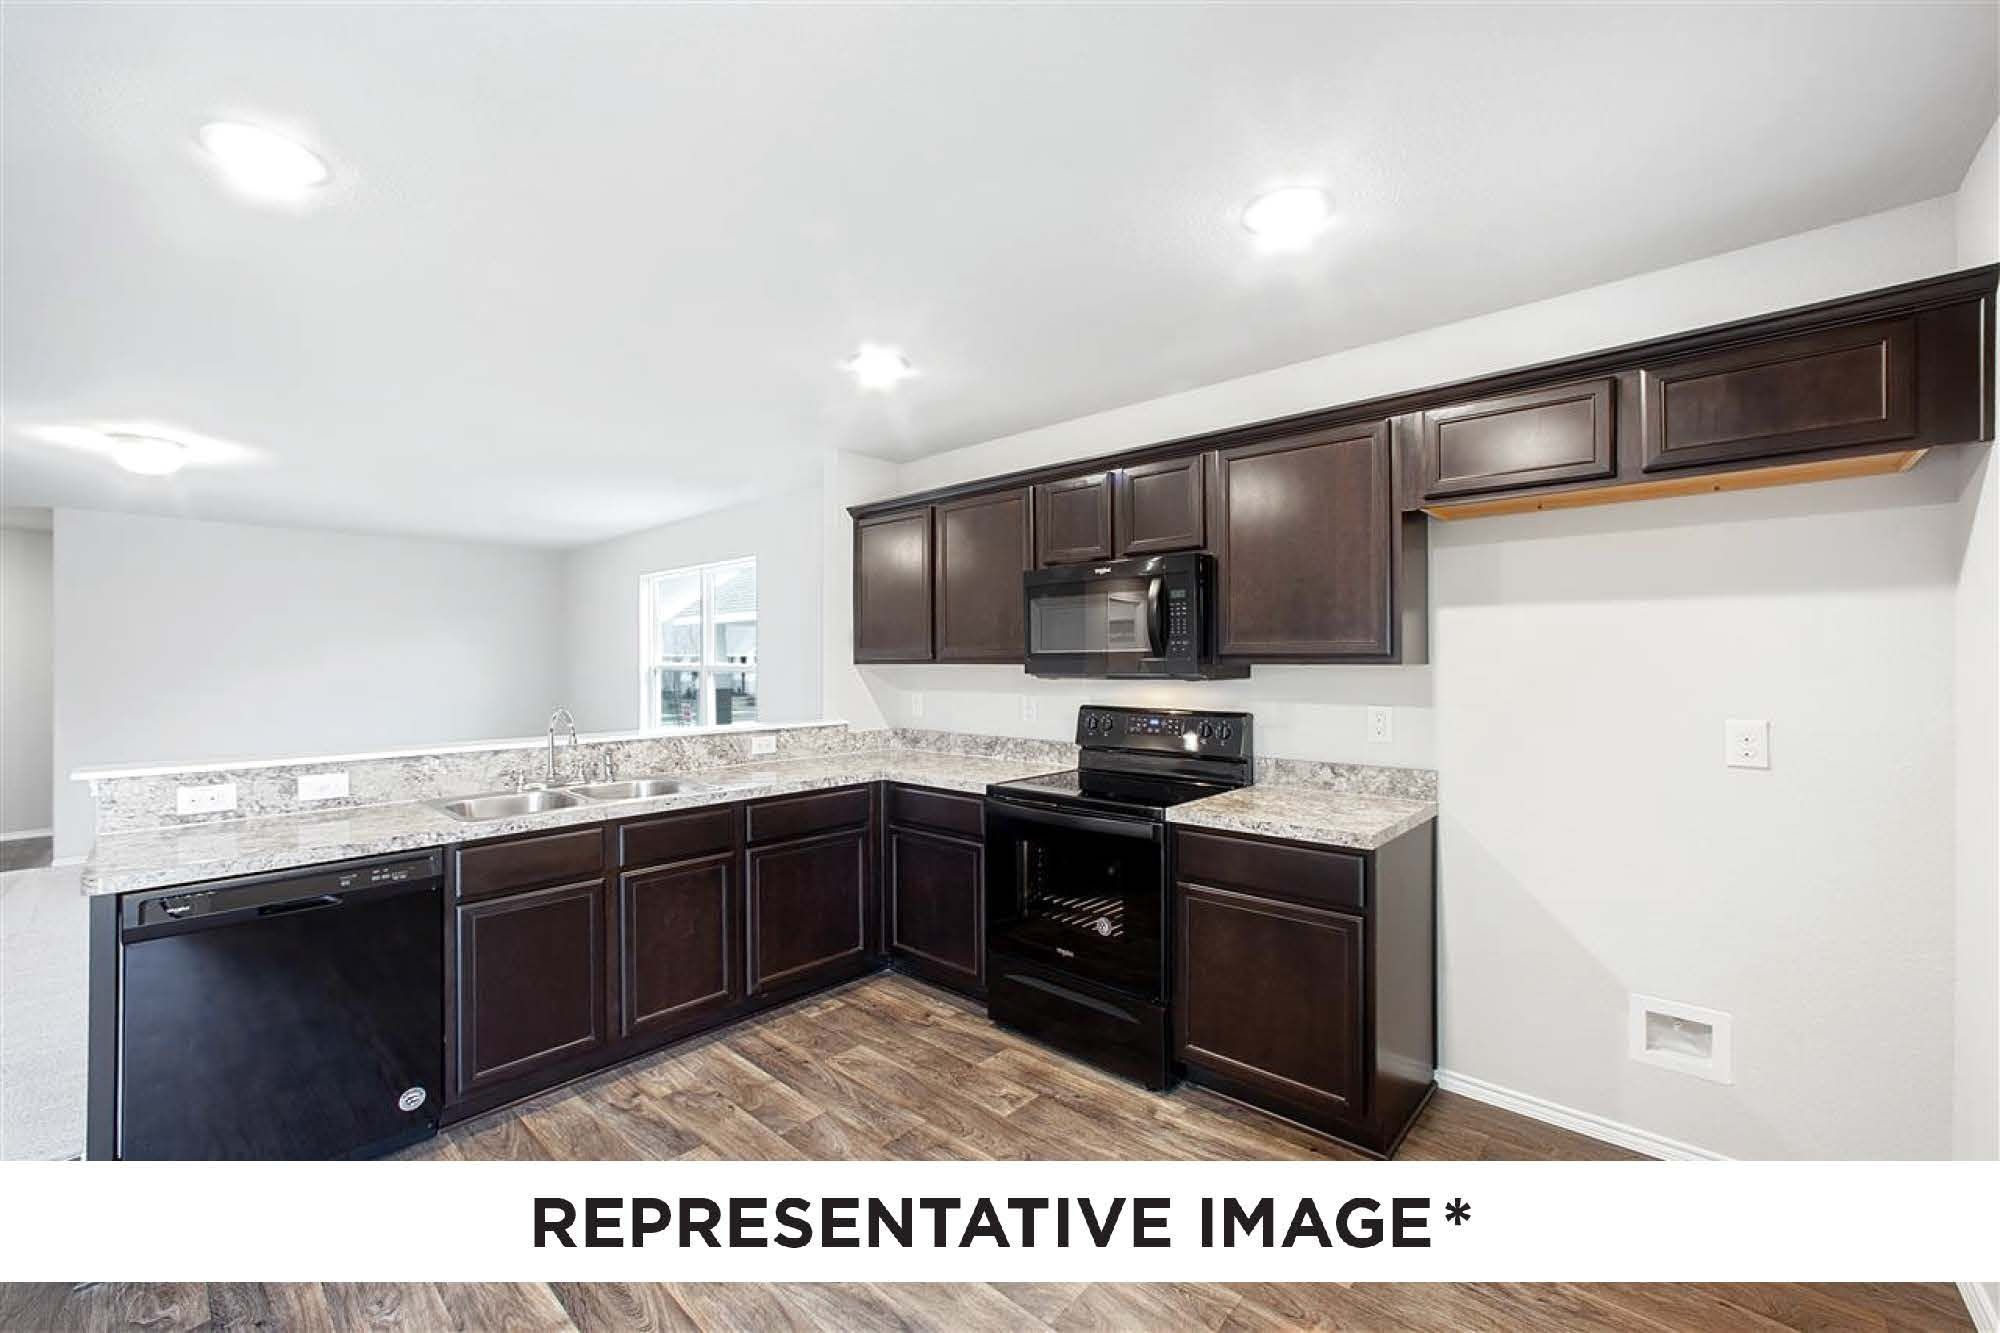 Kitchen featured in the Aspen By HistoryMaker Homes    in Sherman-Denison, TX